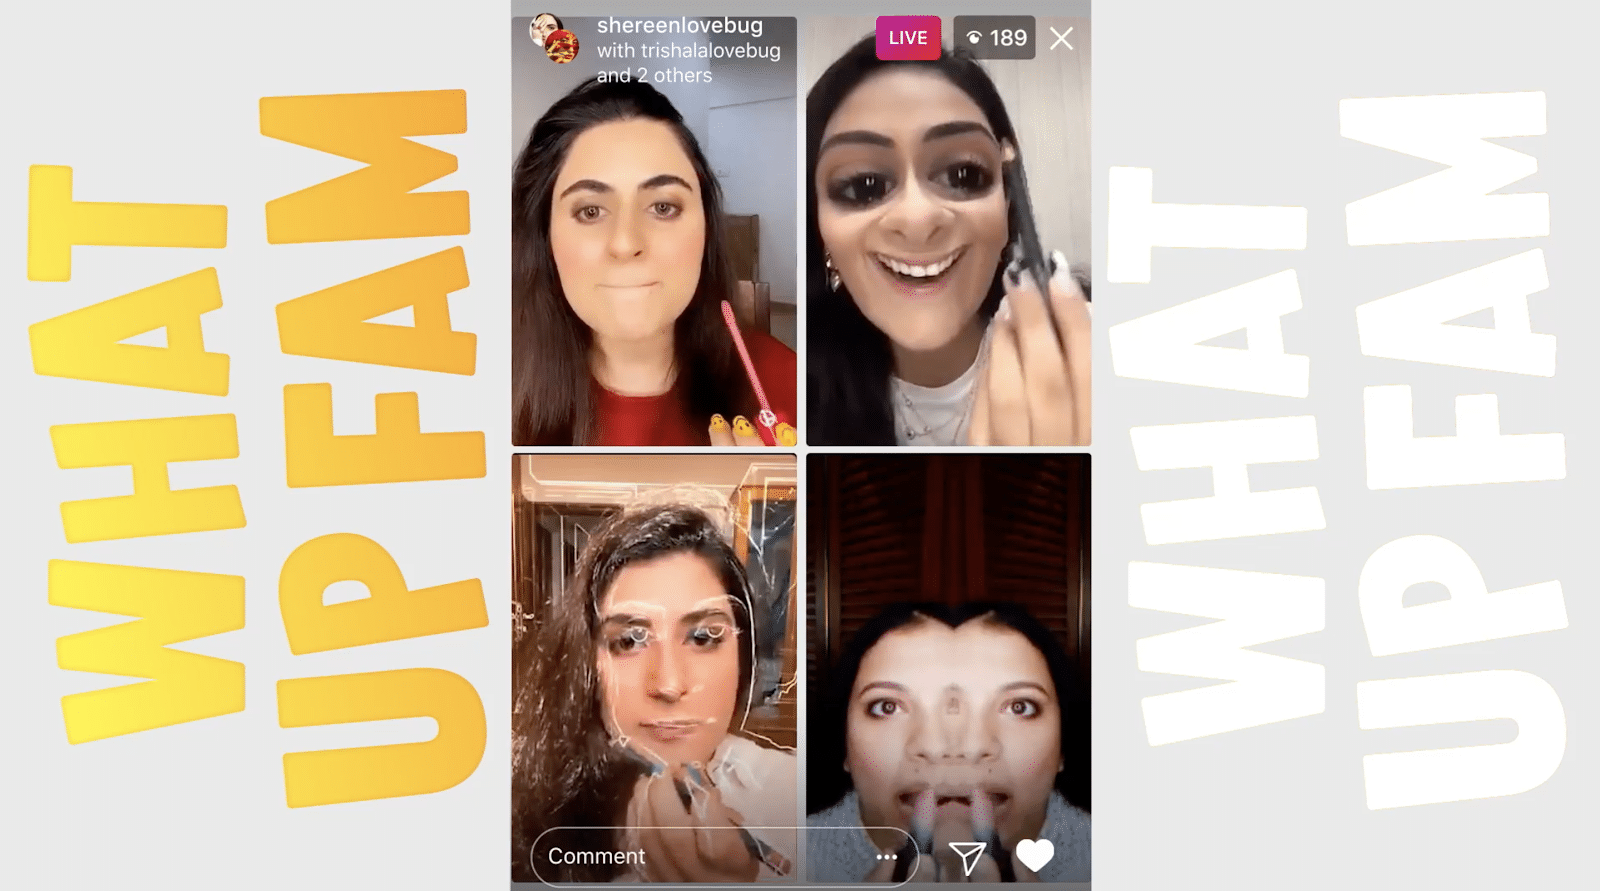 4 Instagram influencers going Live on the same screen